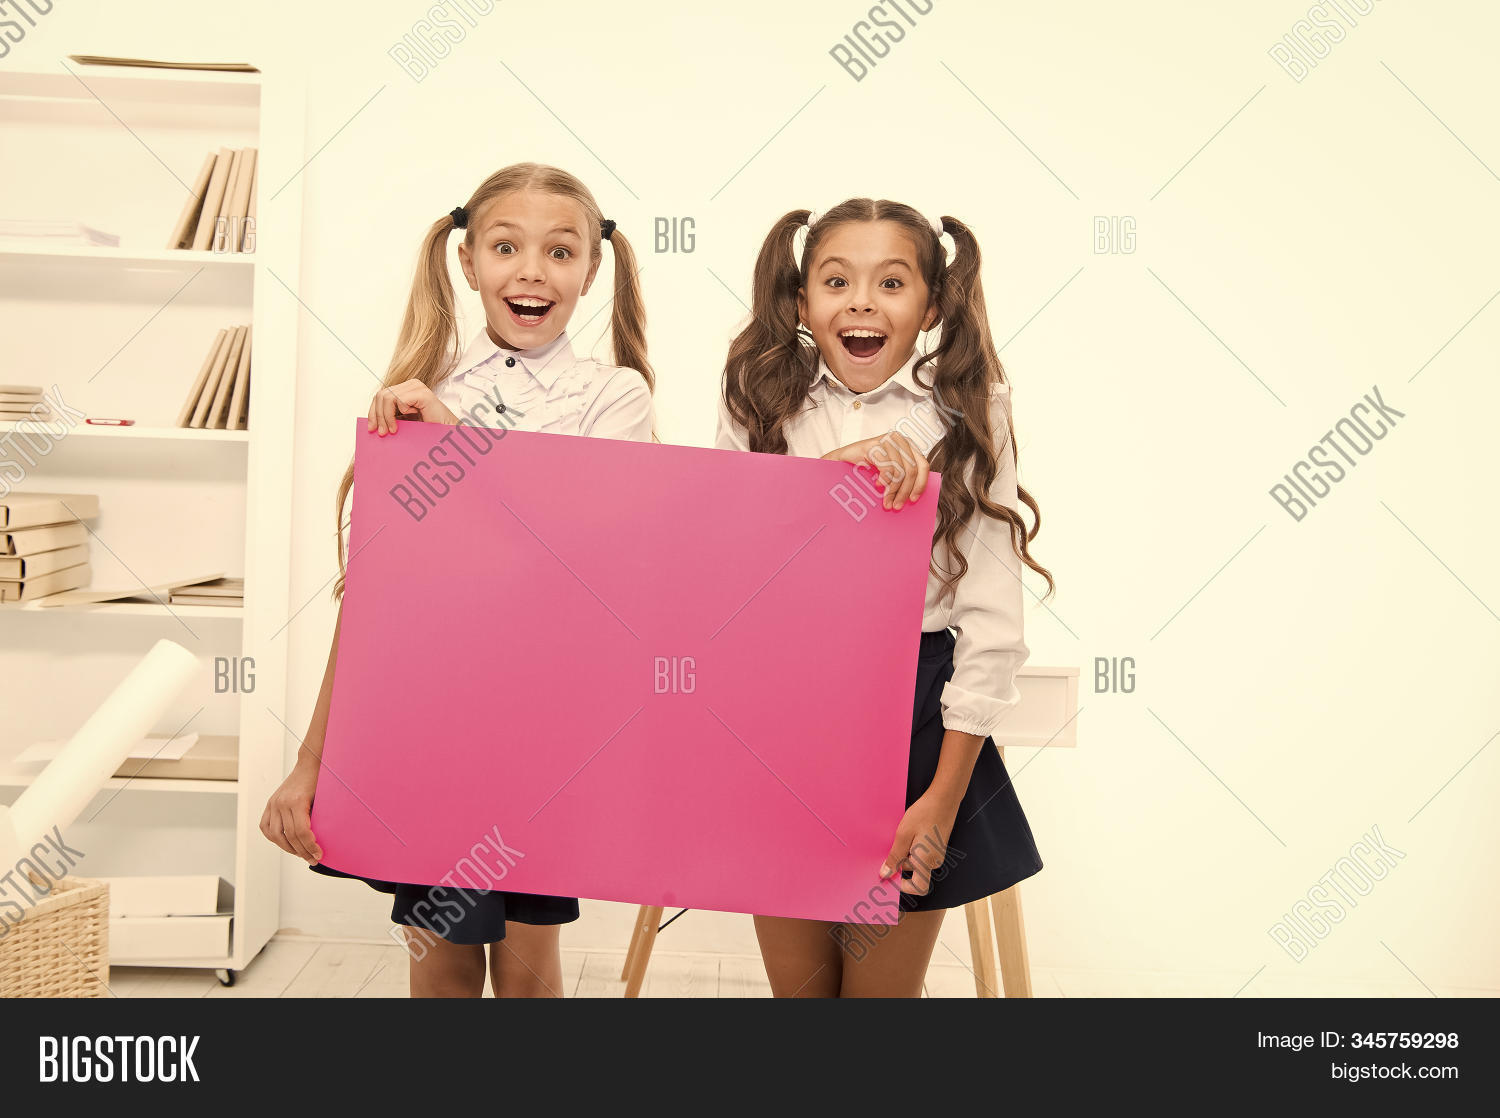 Schoolgirls holding banner announcement. Children greetings copy space. Happy holidays. Congratulations to you. September 1. Congratulations concept. Amazing news. Girls hold congratulations banner.